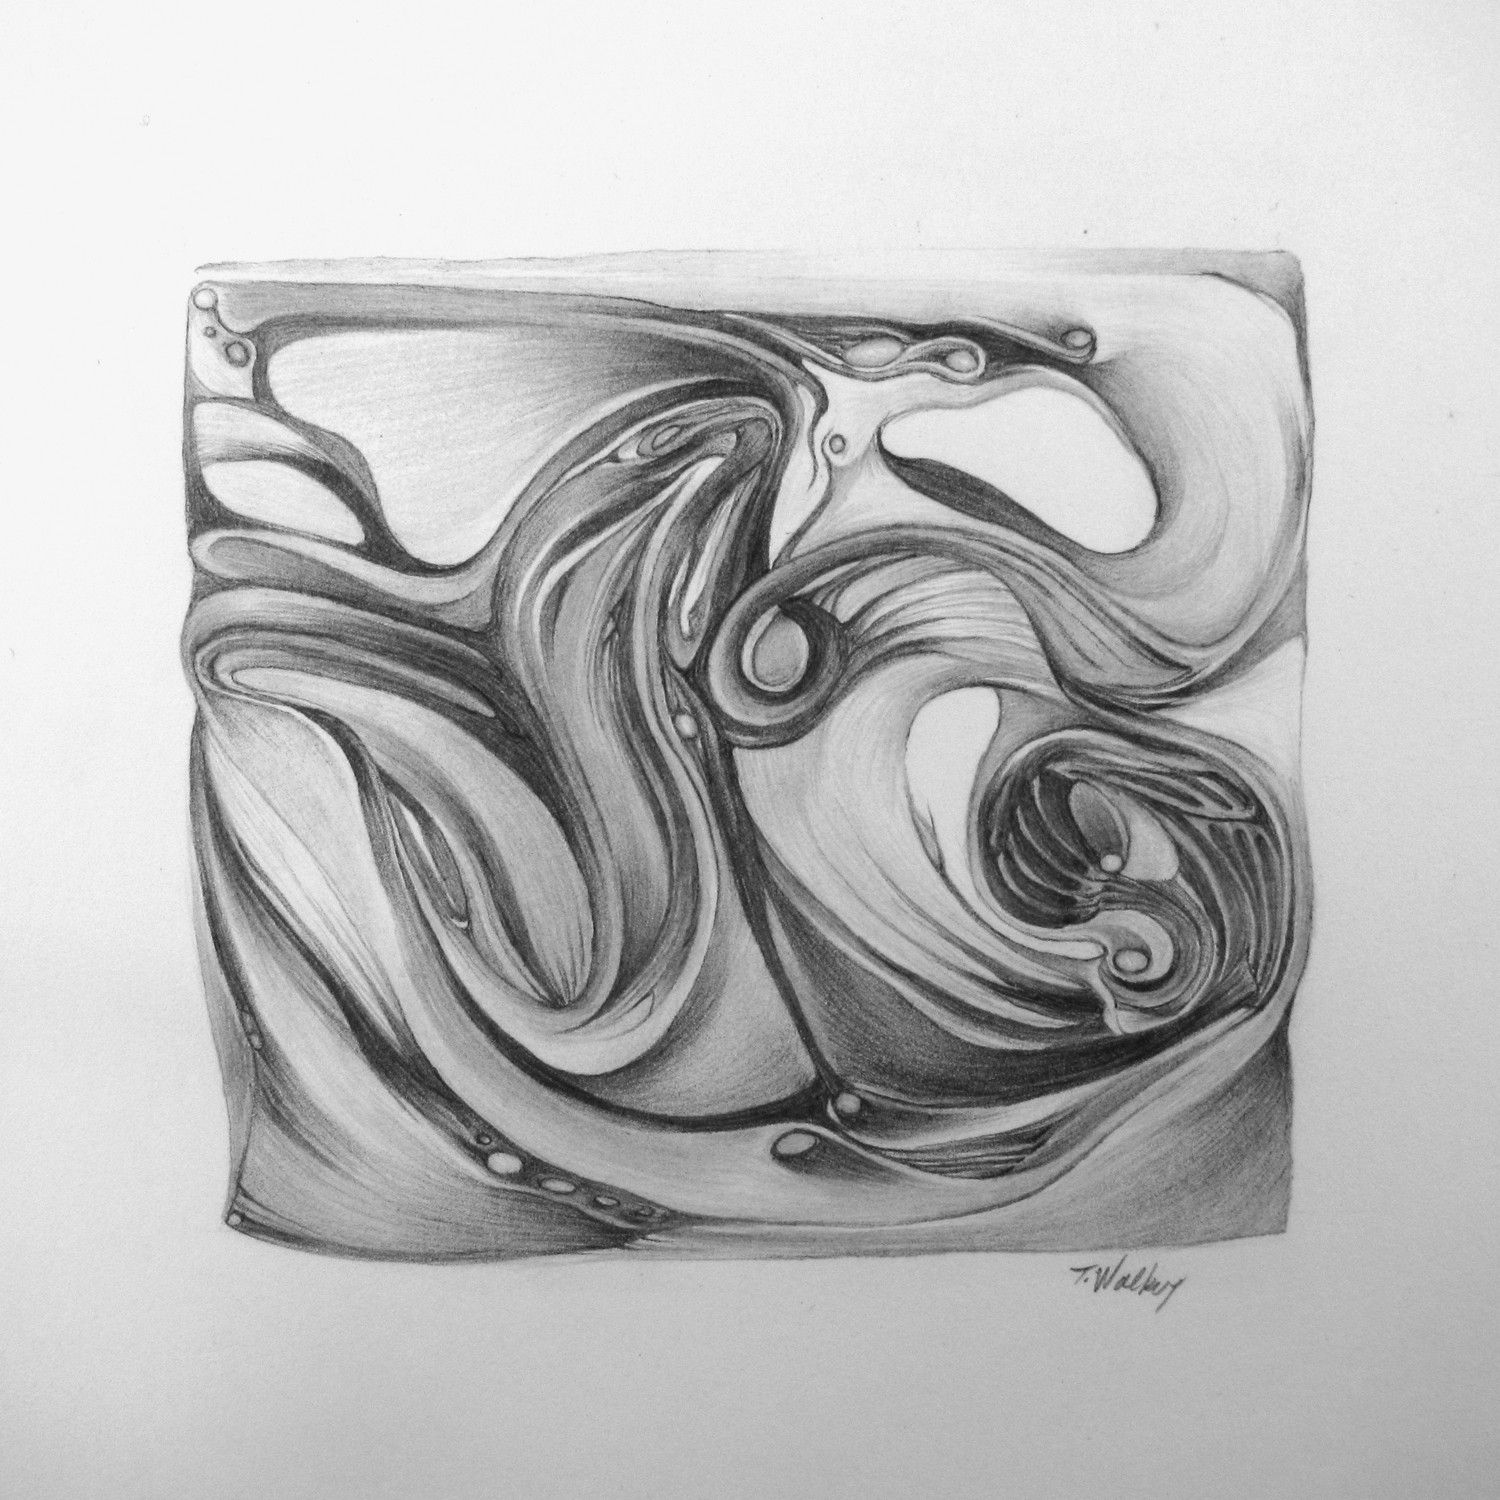 Abstract landscape pencil drawings google search landscape pencil drawings abstract drawings abstract landscape